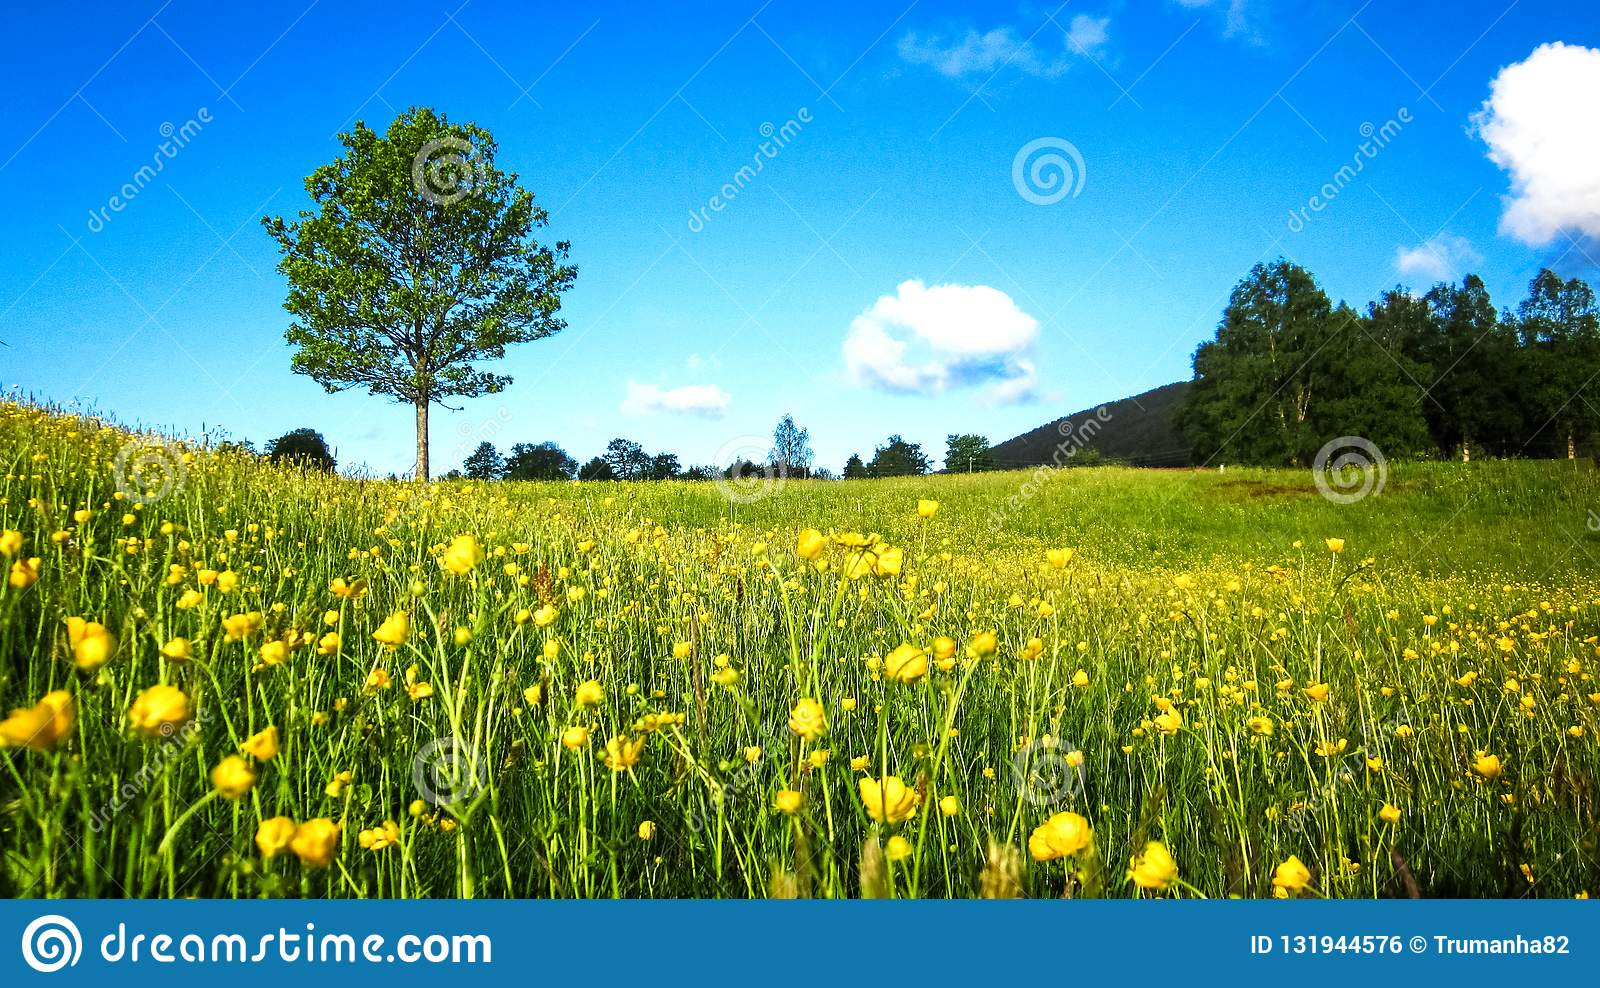 Nature Spring Landscape with A Field of Wild Yellow Buttercups, A Lone Tree and Scattered White Clouds in The Blue Sky